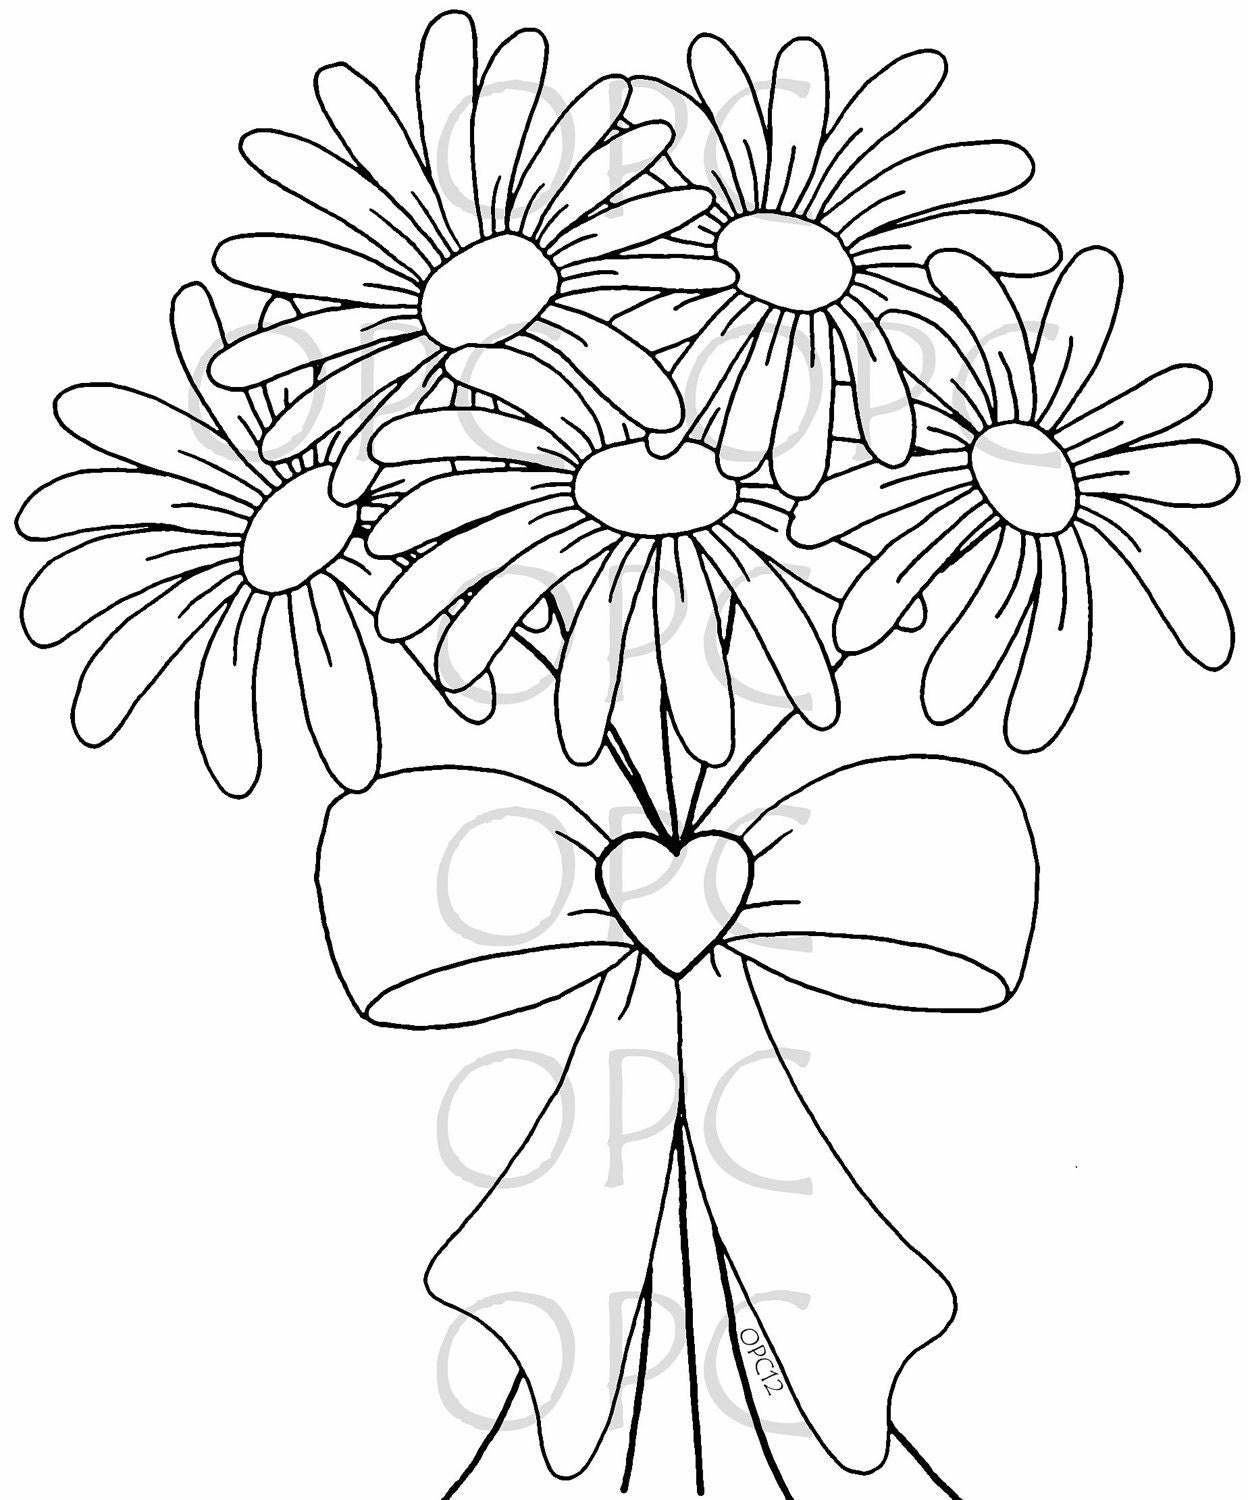 Gerbera Daisy Line Drawing Gerber Related Keywords